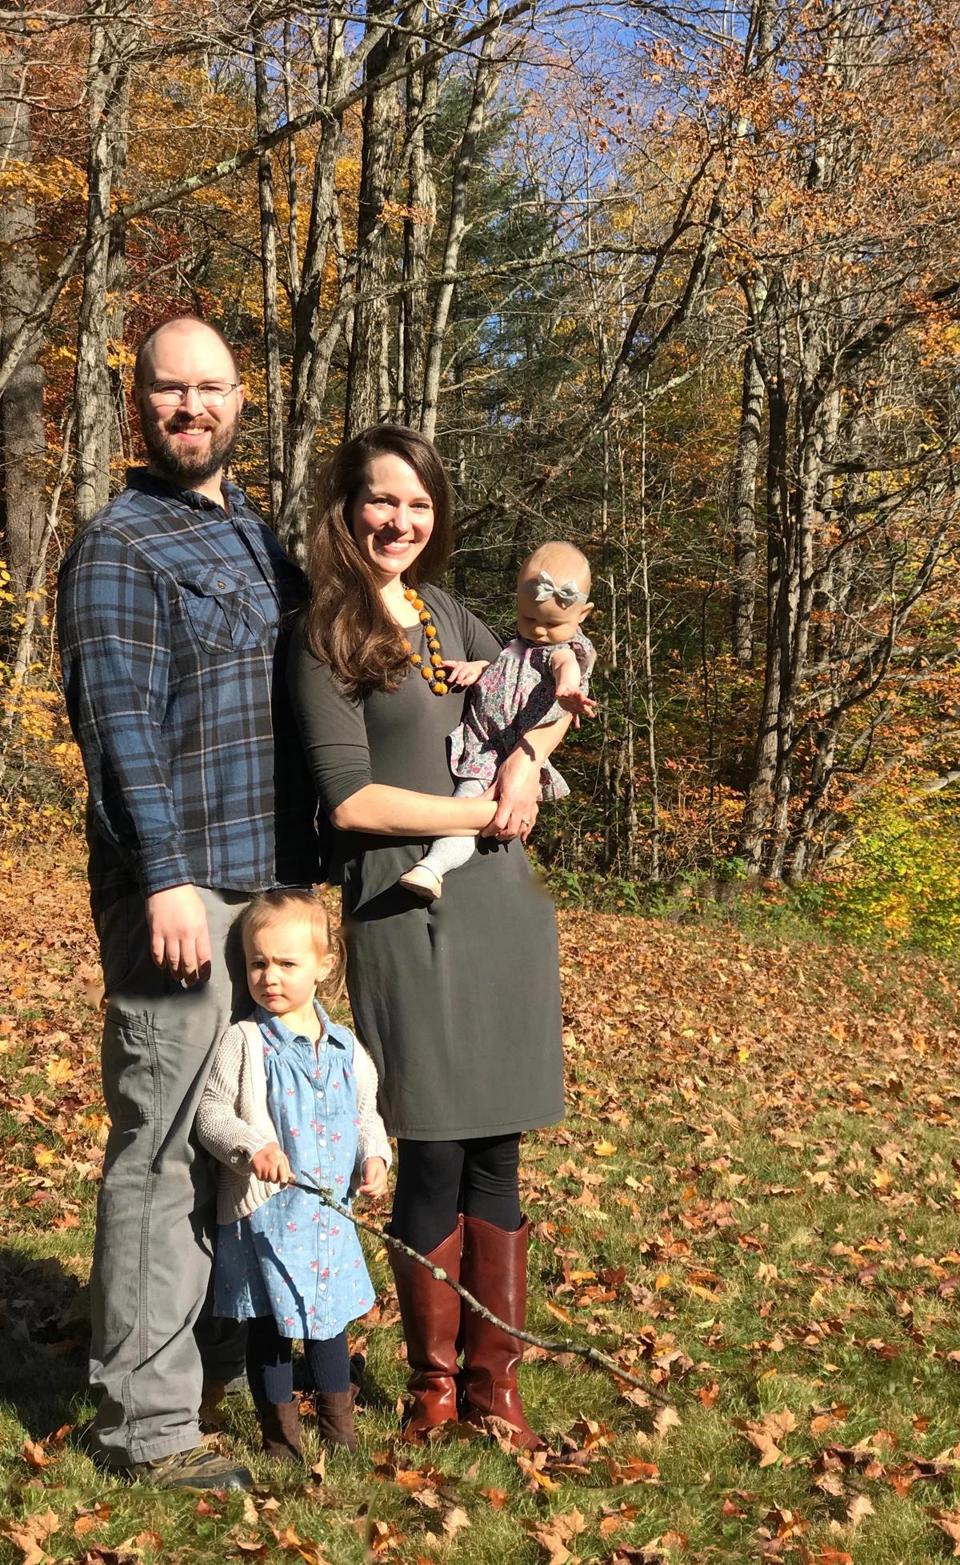 The Frugalwoods — Elizabeth Willard Thames, her husband, Nate, and their two children — in Vermont.